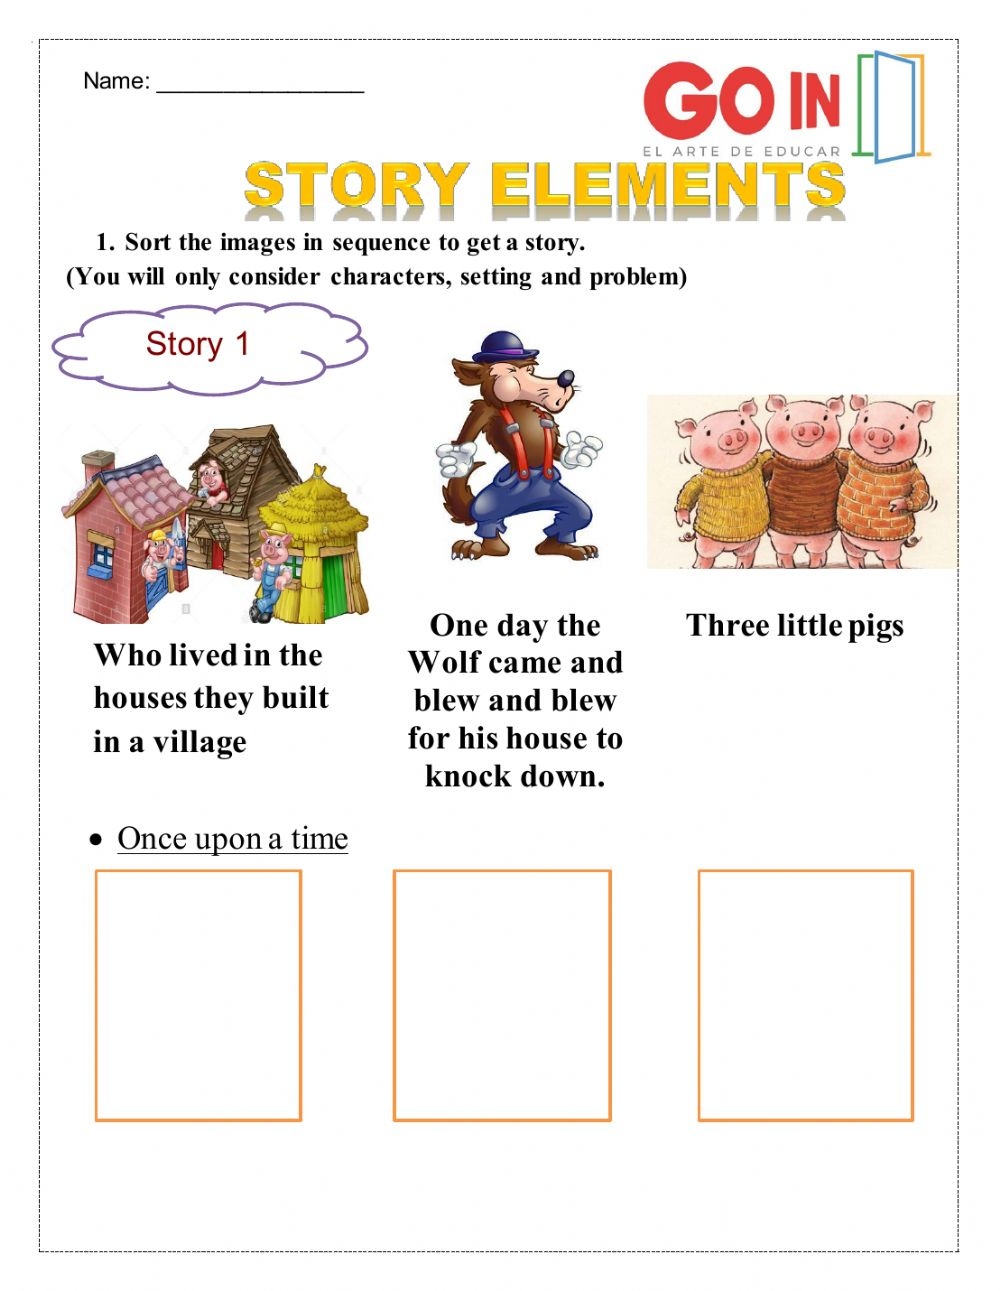 medium resolution of Story elements activity